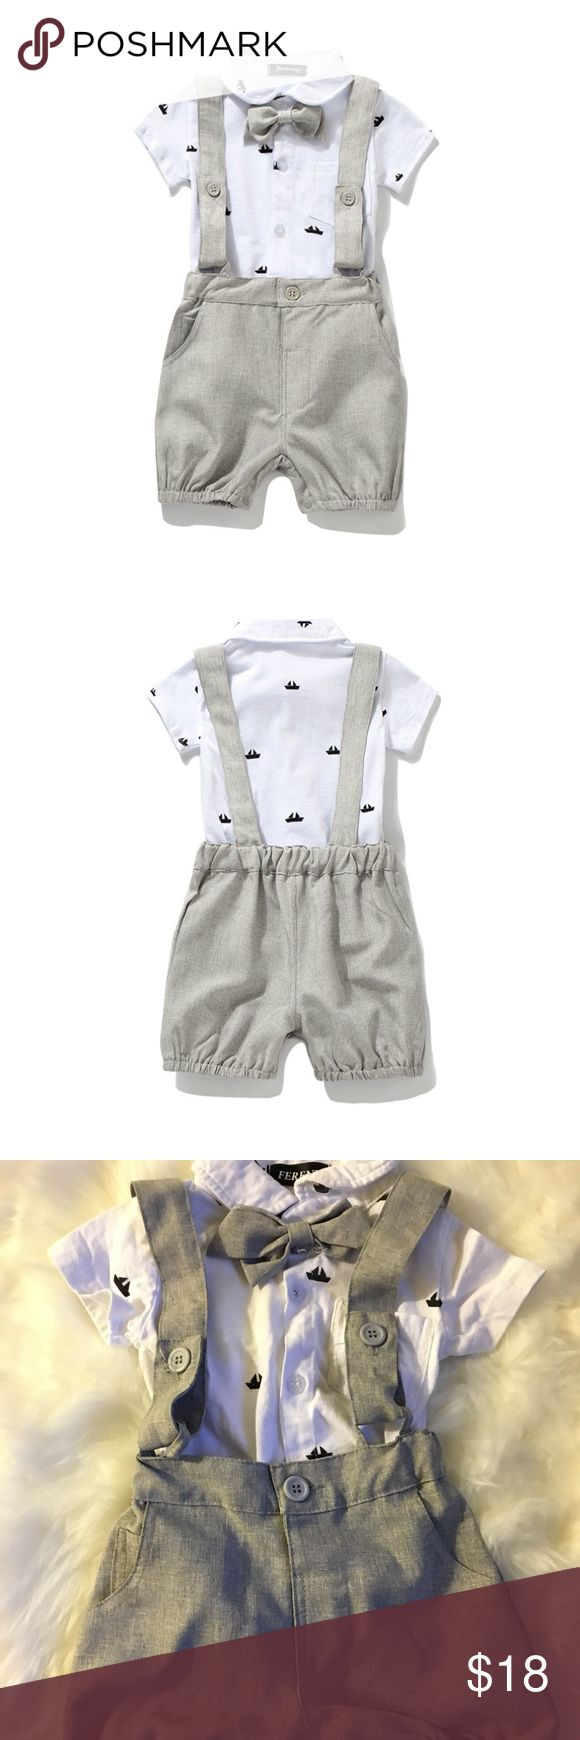 👶🏼 Baby Boys Bowtie Jumpsuit Overalls Rompers Boys gentleman romper, V-neck with a bow tie, short sleeves.Plaid design on attached faux straps and the bottom. Suitable for pageant, party, wedding or birthday. Buttons on top bodice and crotch for easy wearing. The shirt does have a yellow stain please refer to last picture. Matching Sets